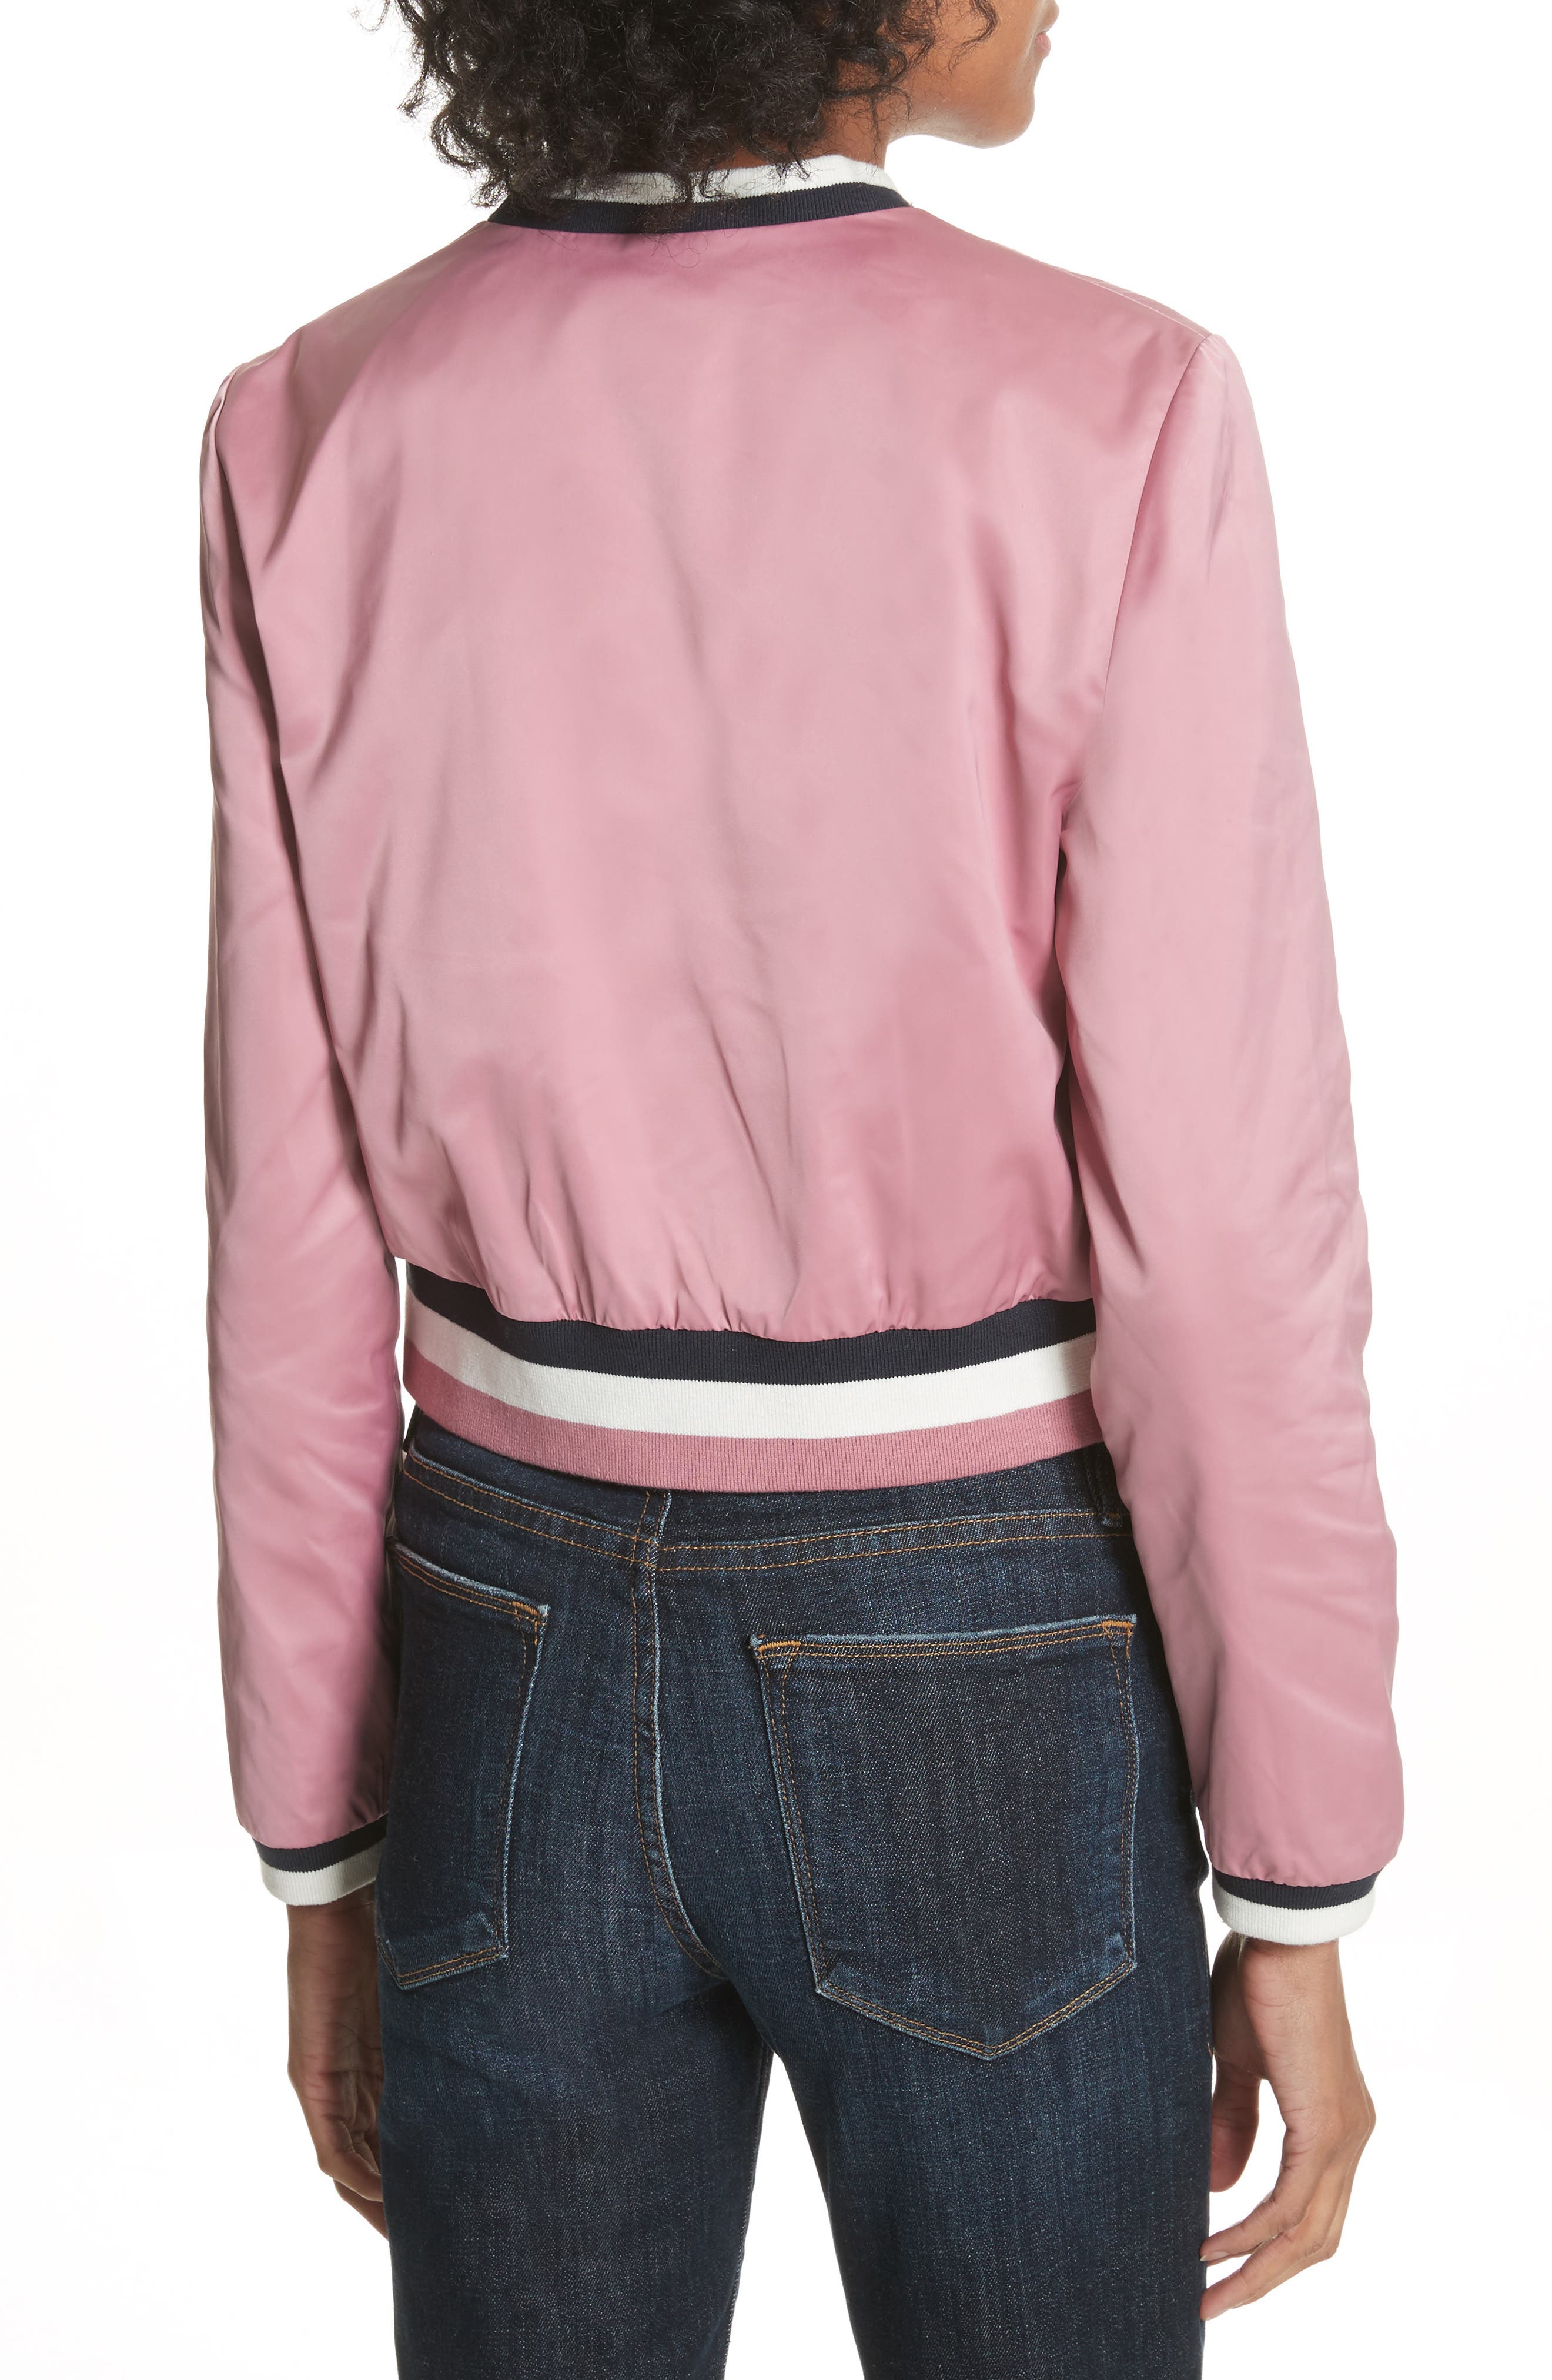 Colour by Numbers Bomber Jacket,                             Alternate thumbnail 2, color,                             Dusky Pink